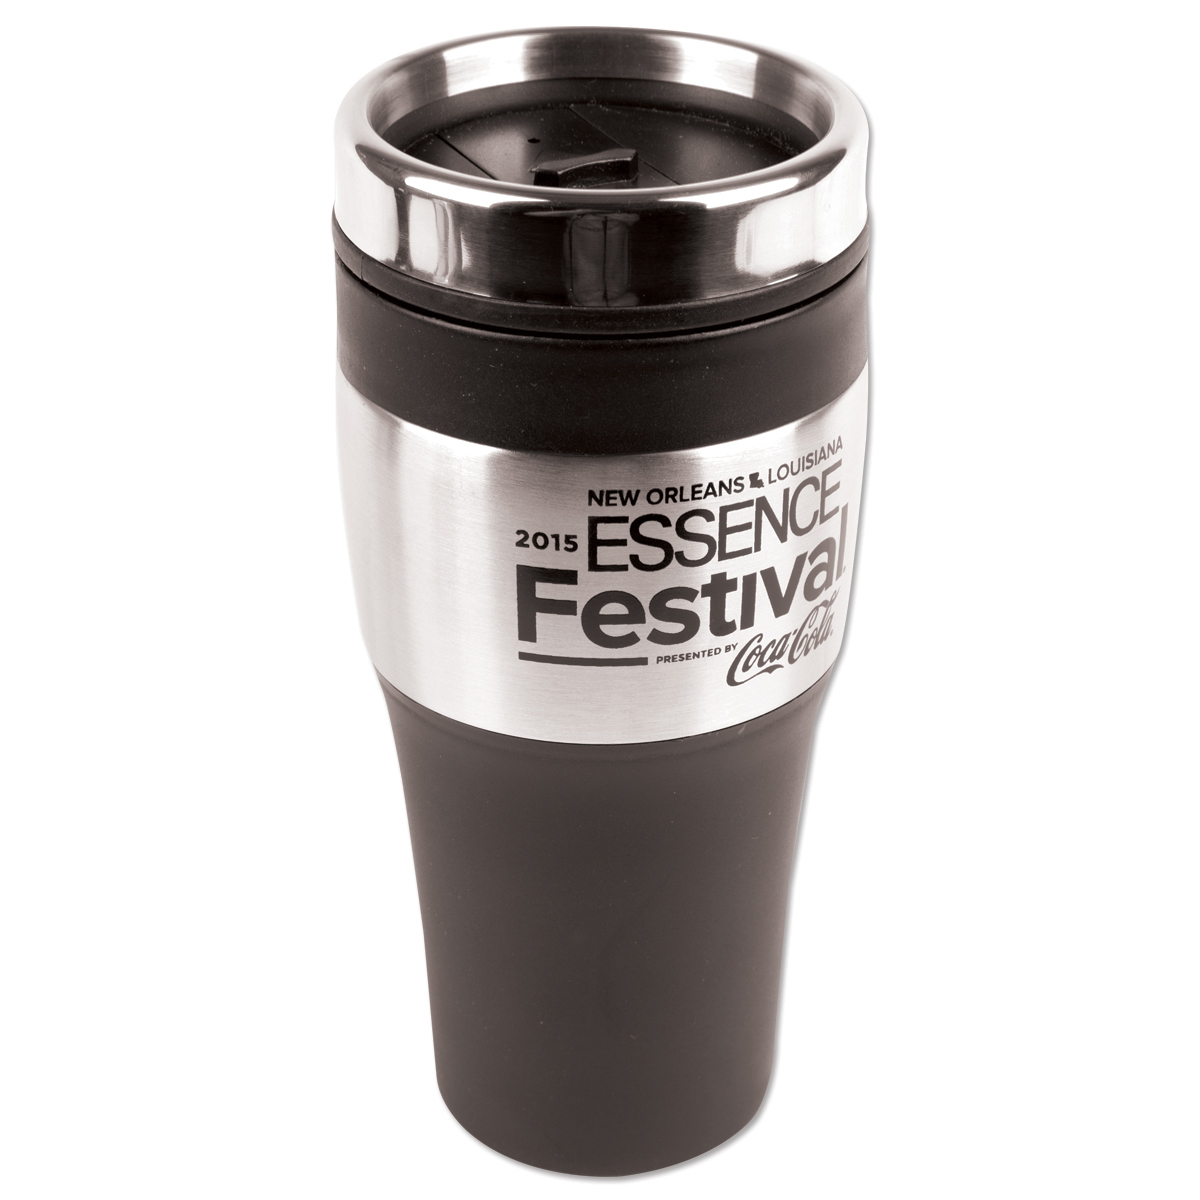 2015 Essence Festival Stainless Steel Tumbler